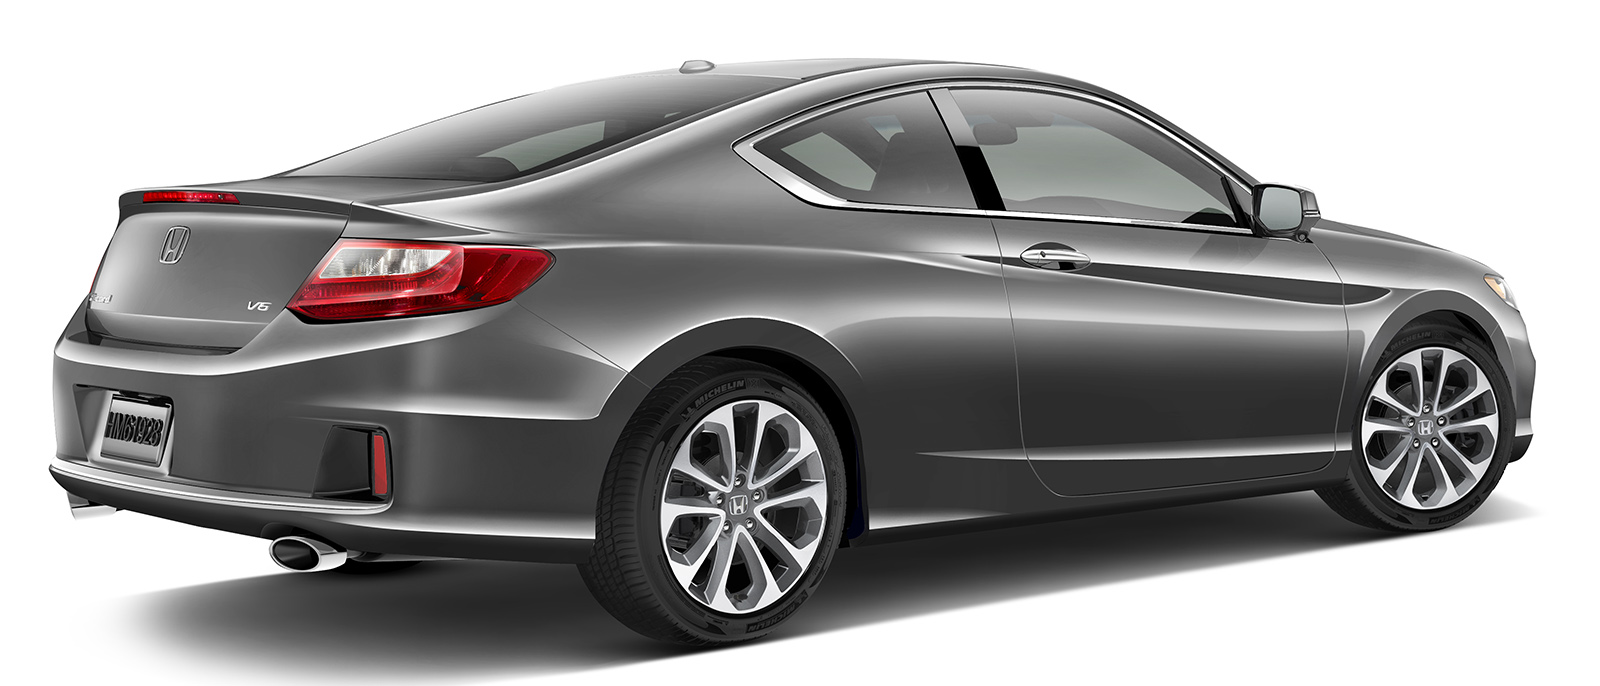 honda accord coupe 2015. 2015 honda accord coupe rear exterior 5